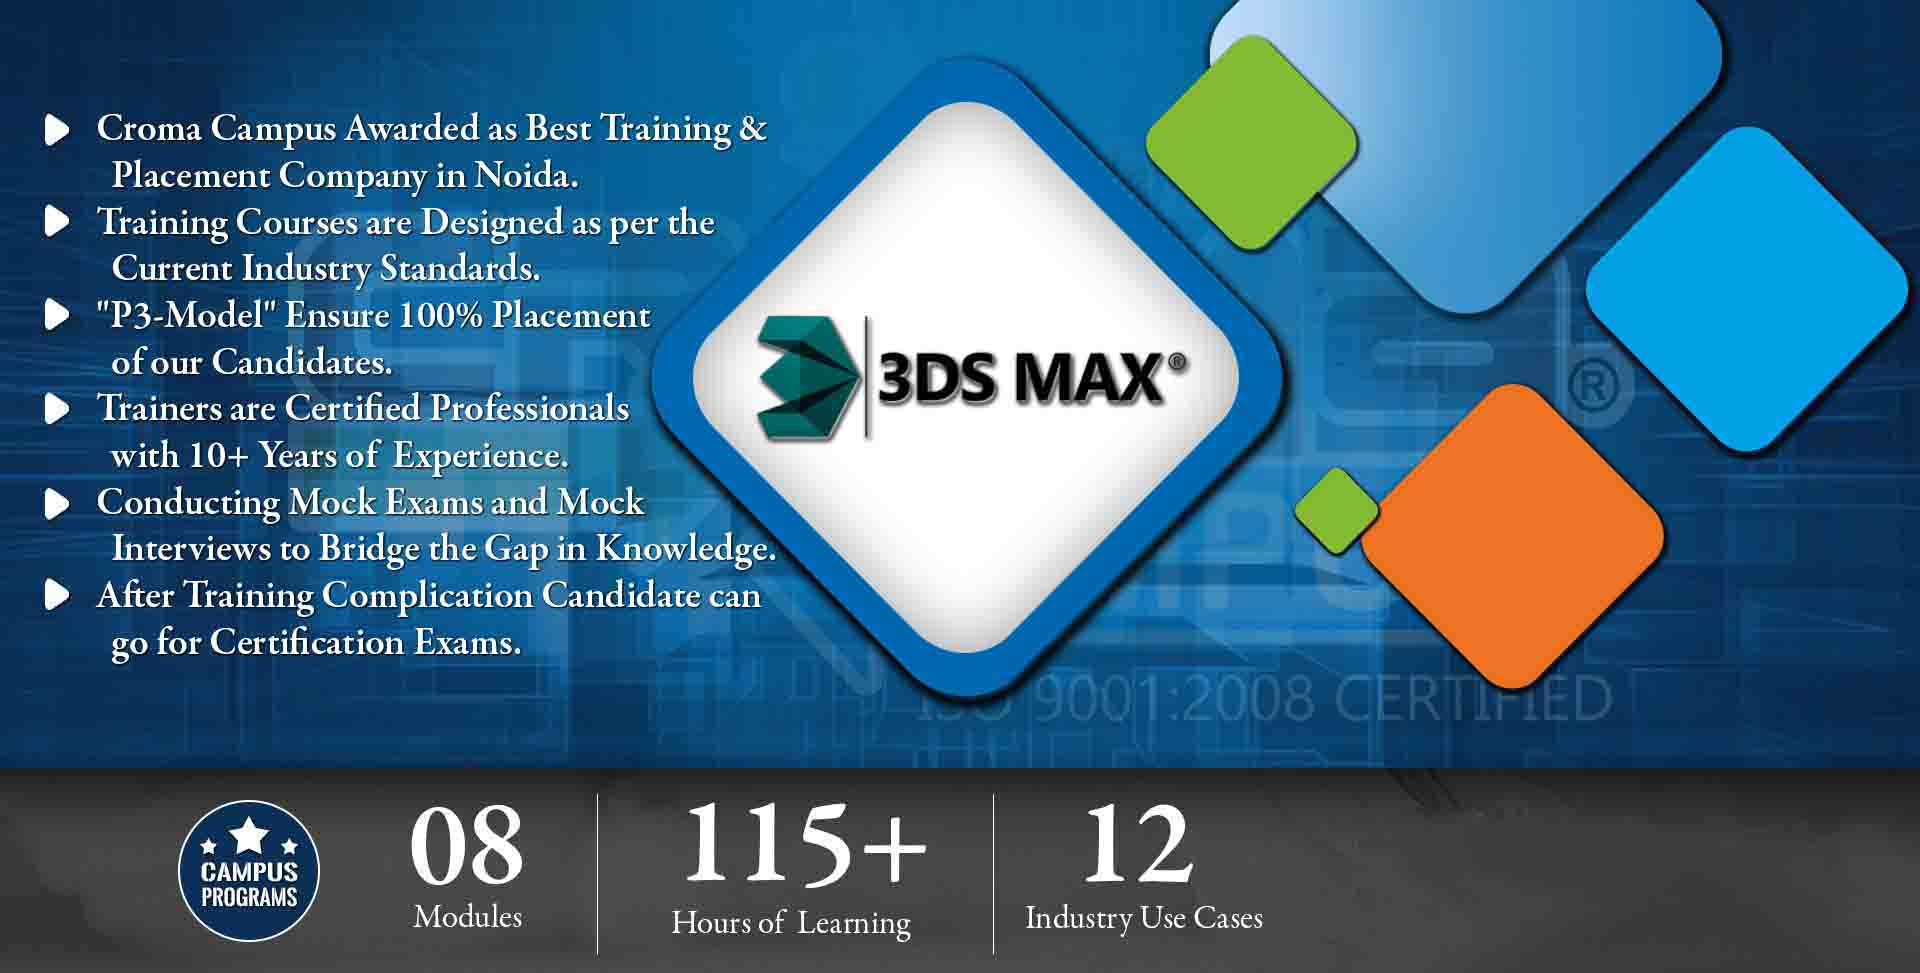 3ds Max Training in Delhi NCR- Croma Campus